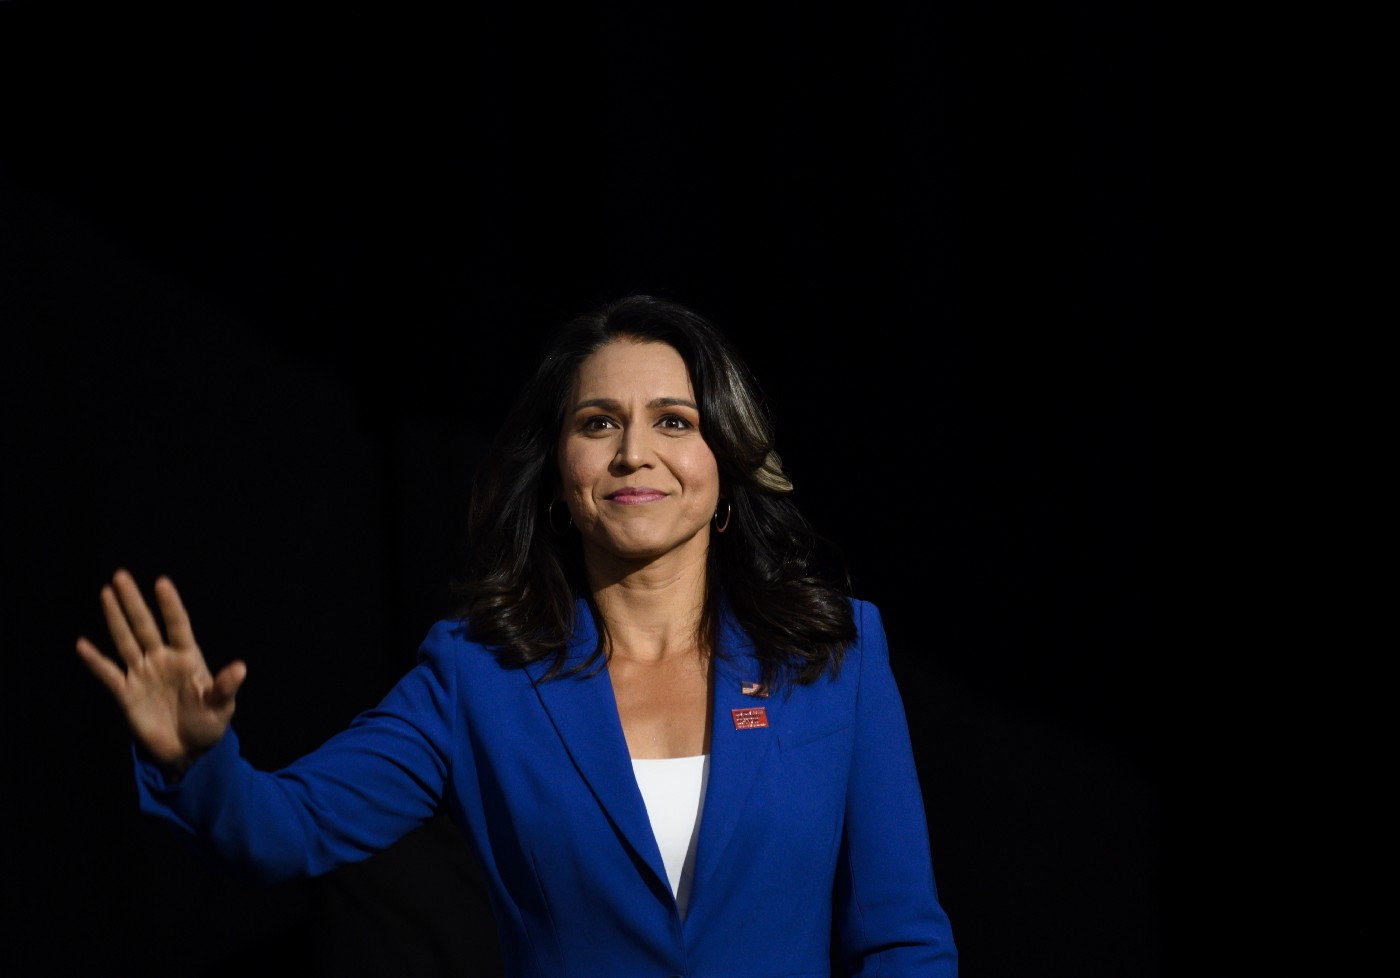 Democratic presidential candidate Rep. Tulsi Gabbard (D-HI) speaks during a forum on gun safety at the Iowa Events Center.